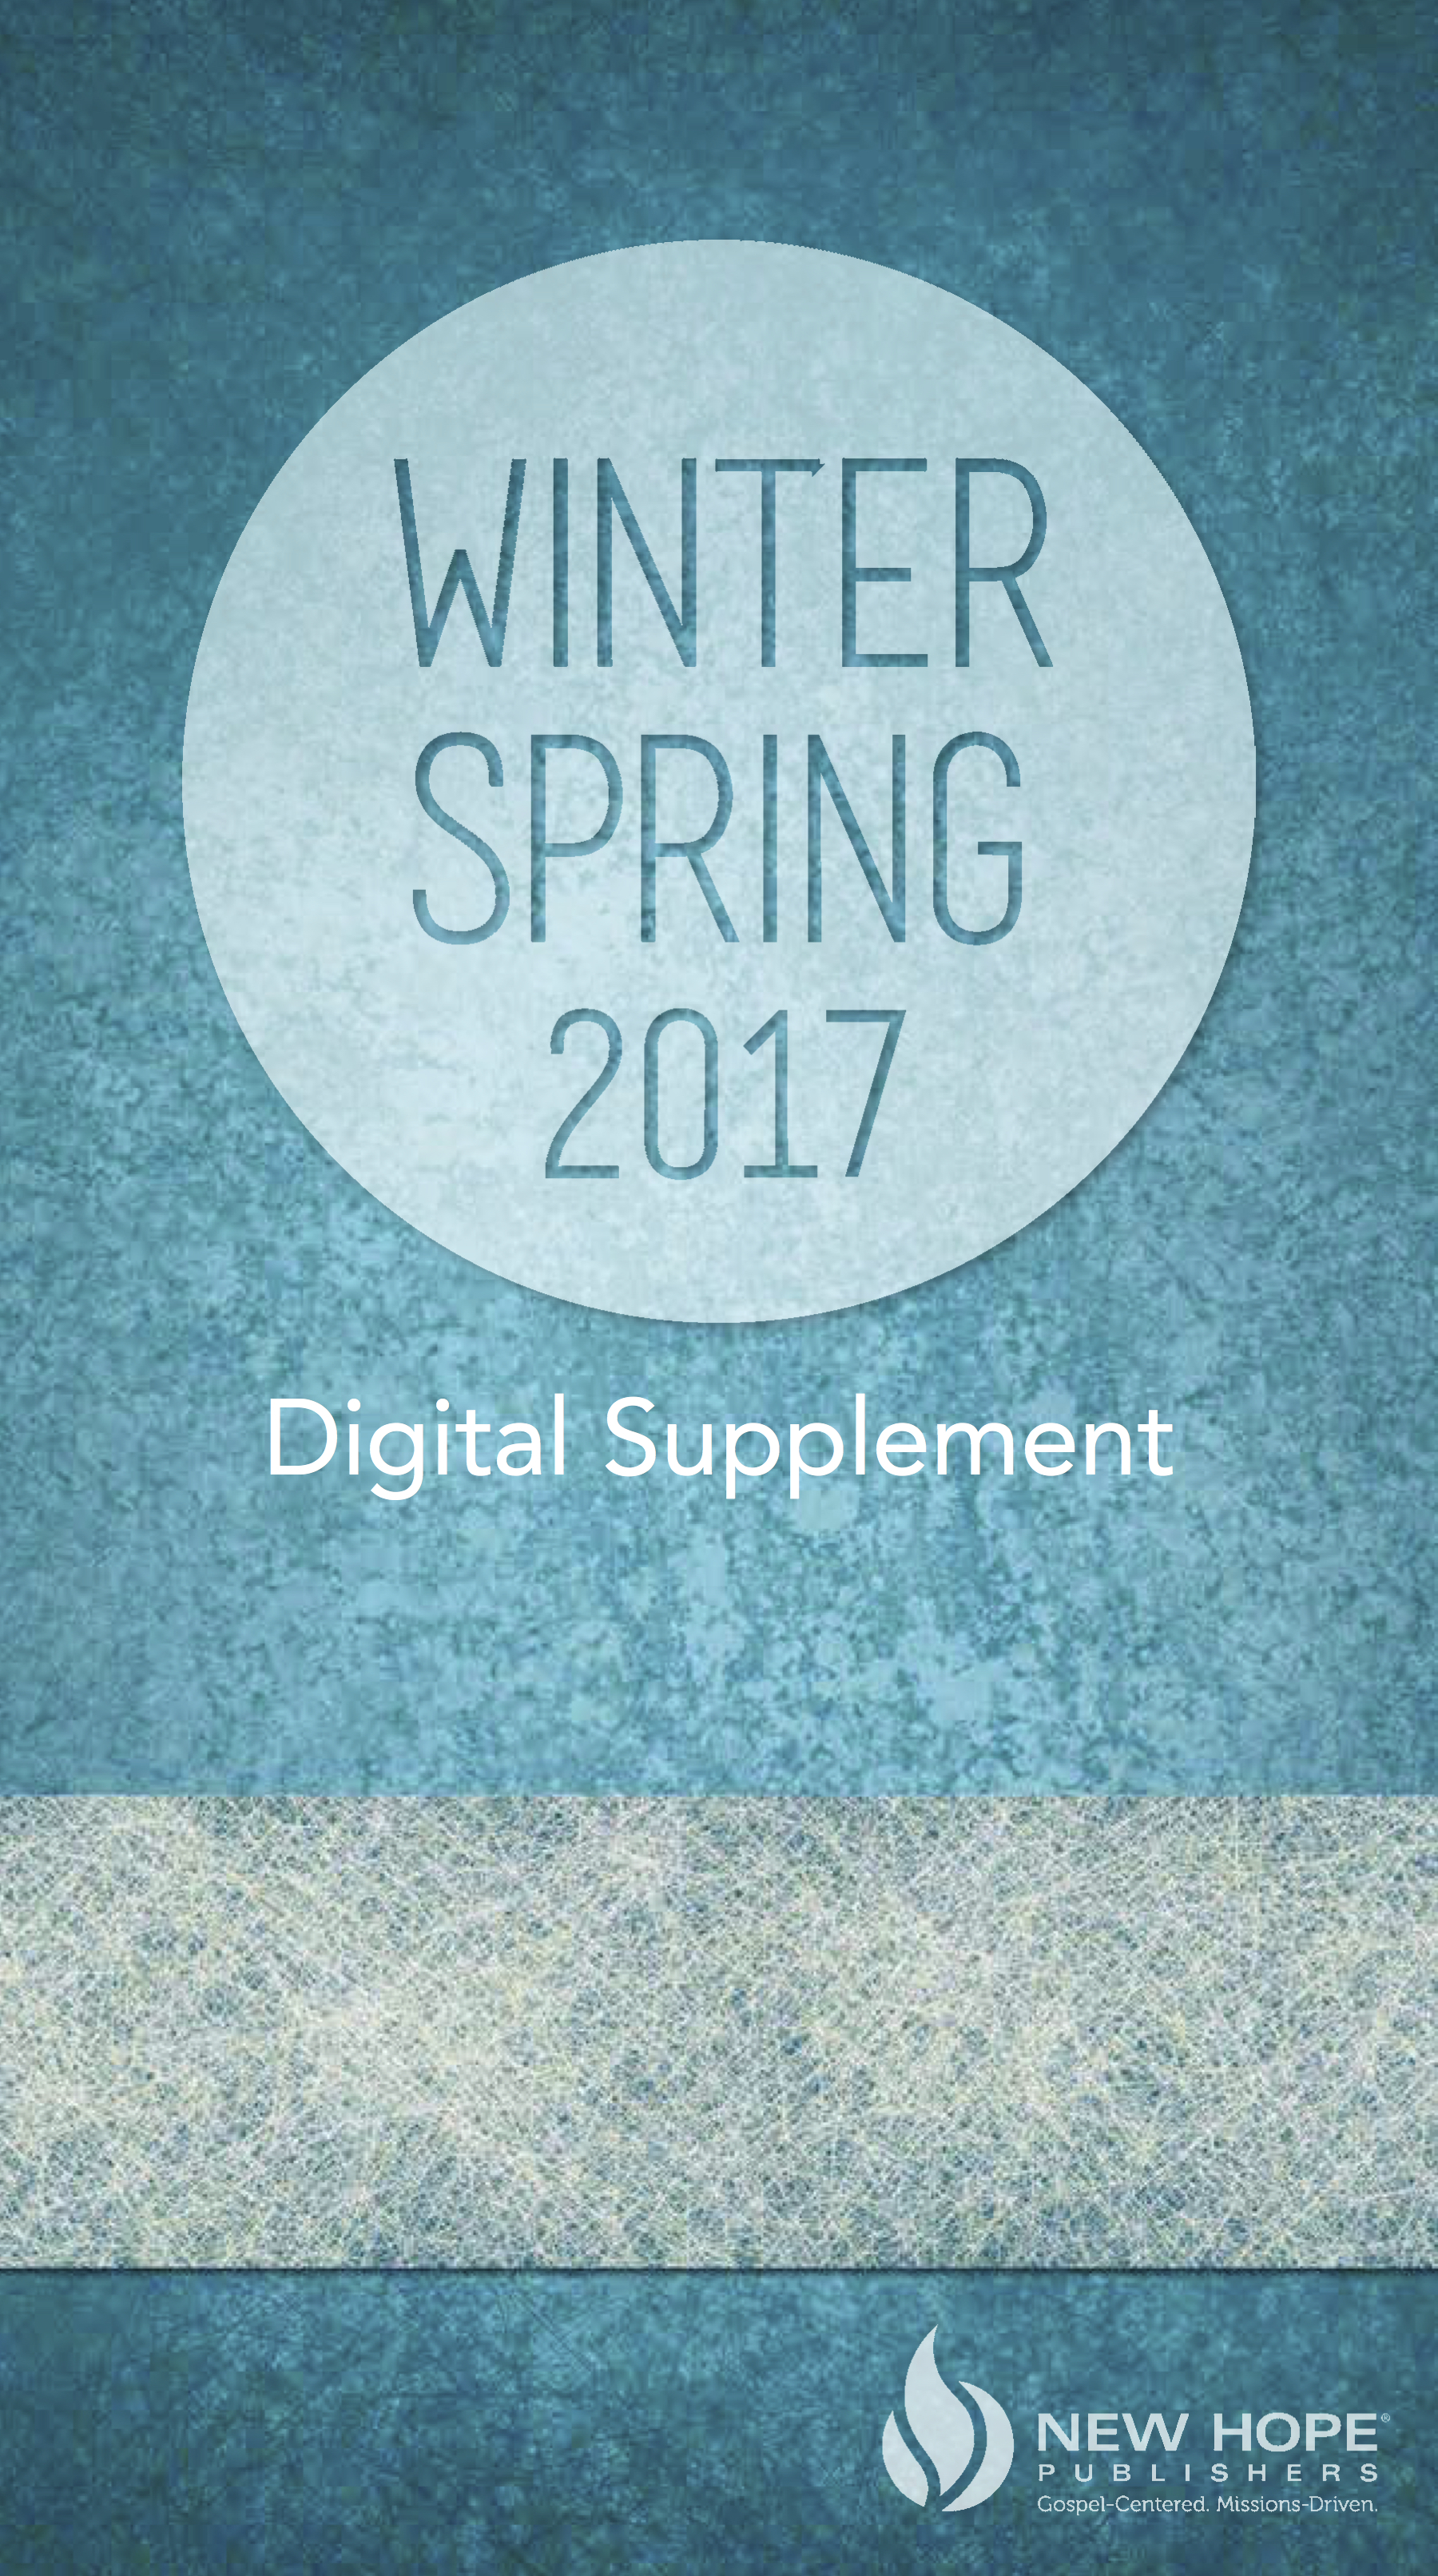 nh-winter-17-supplement-final